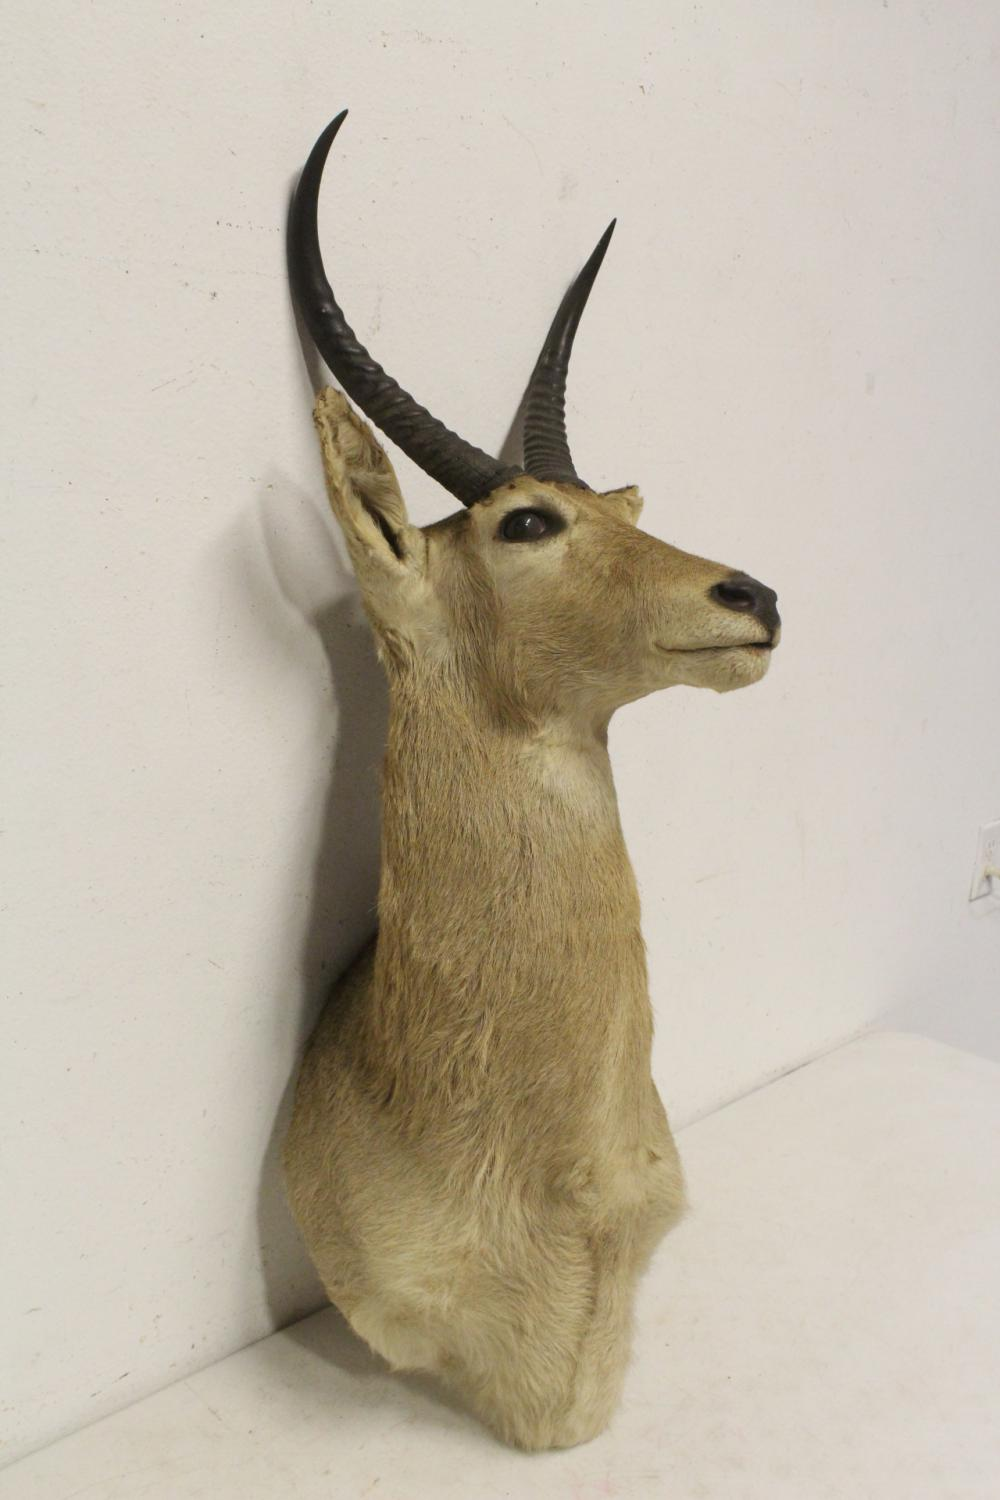 Lot 142: A shoulder mount taxidermy of mountain goat